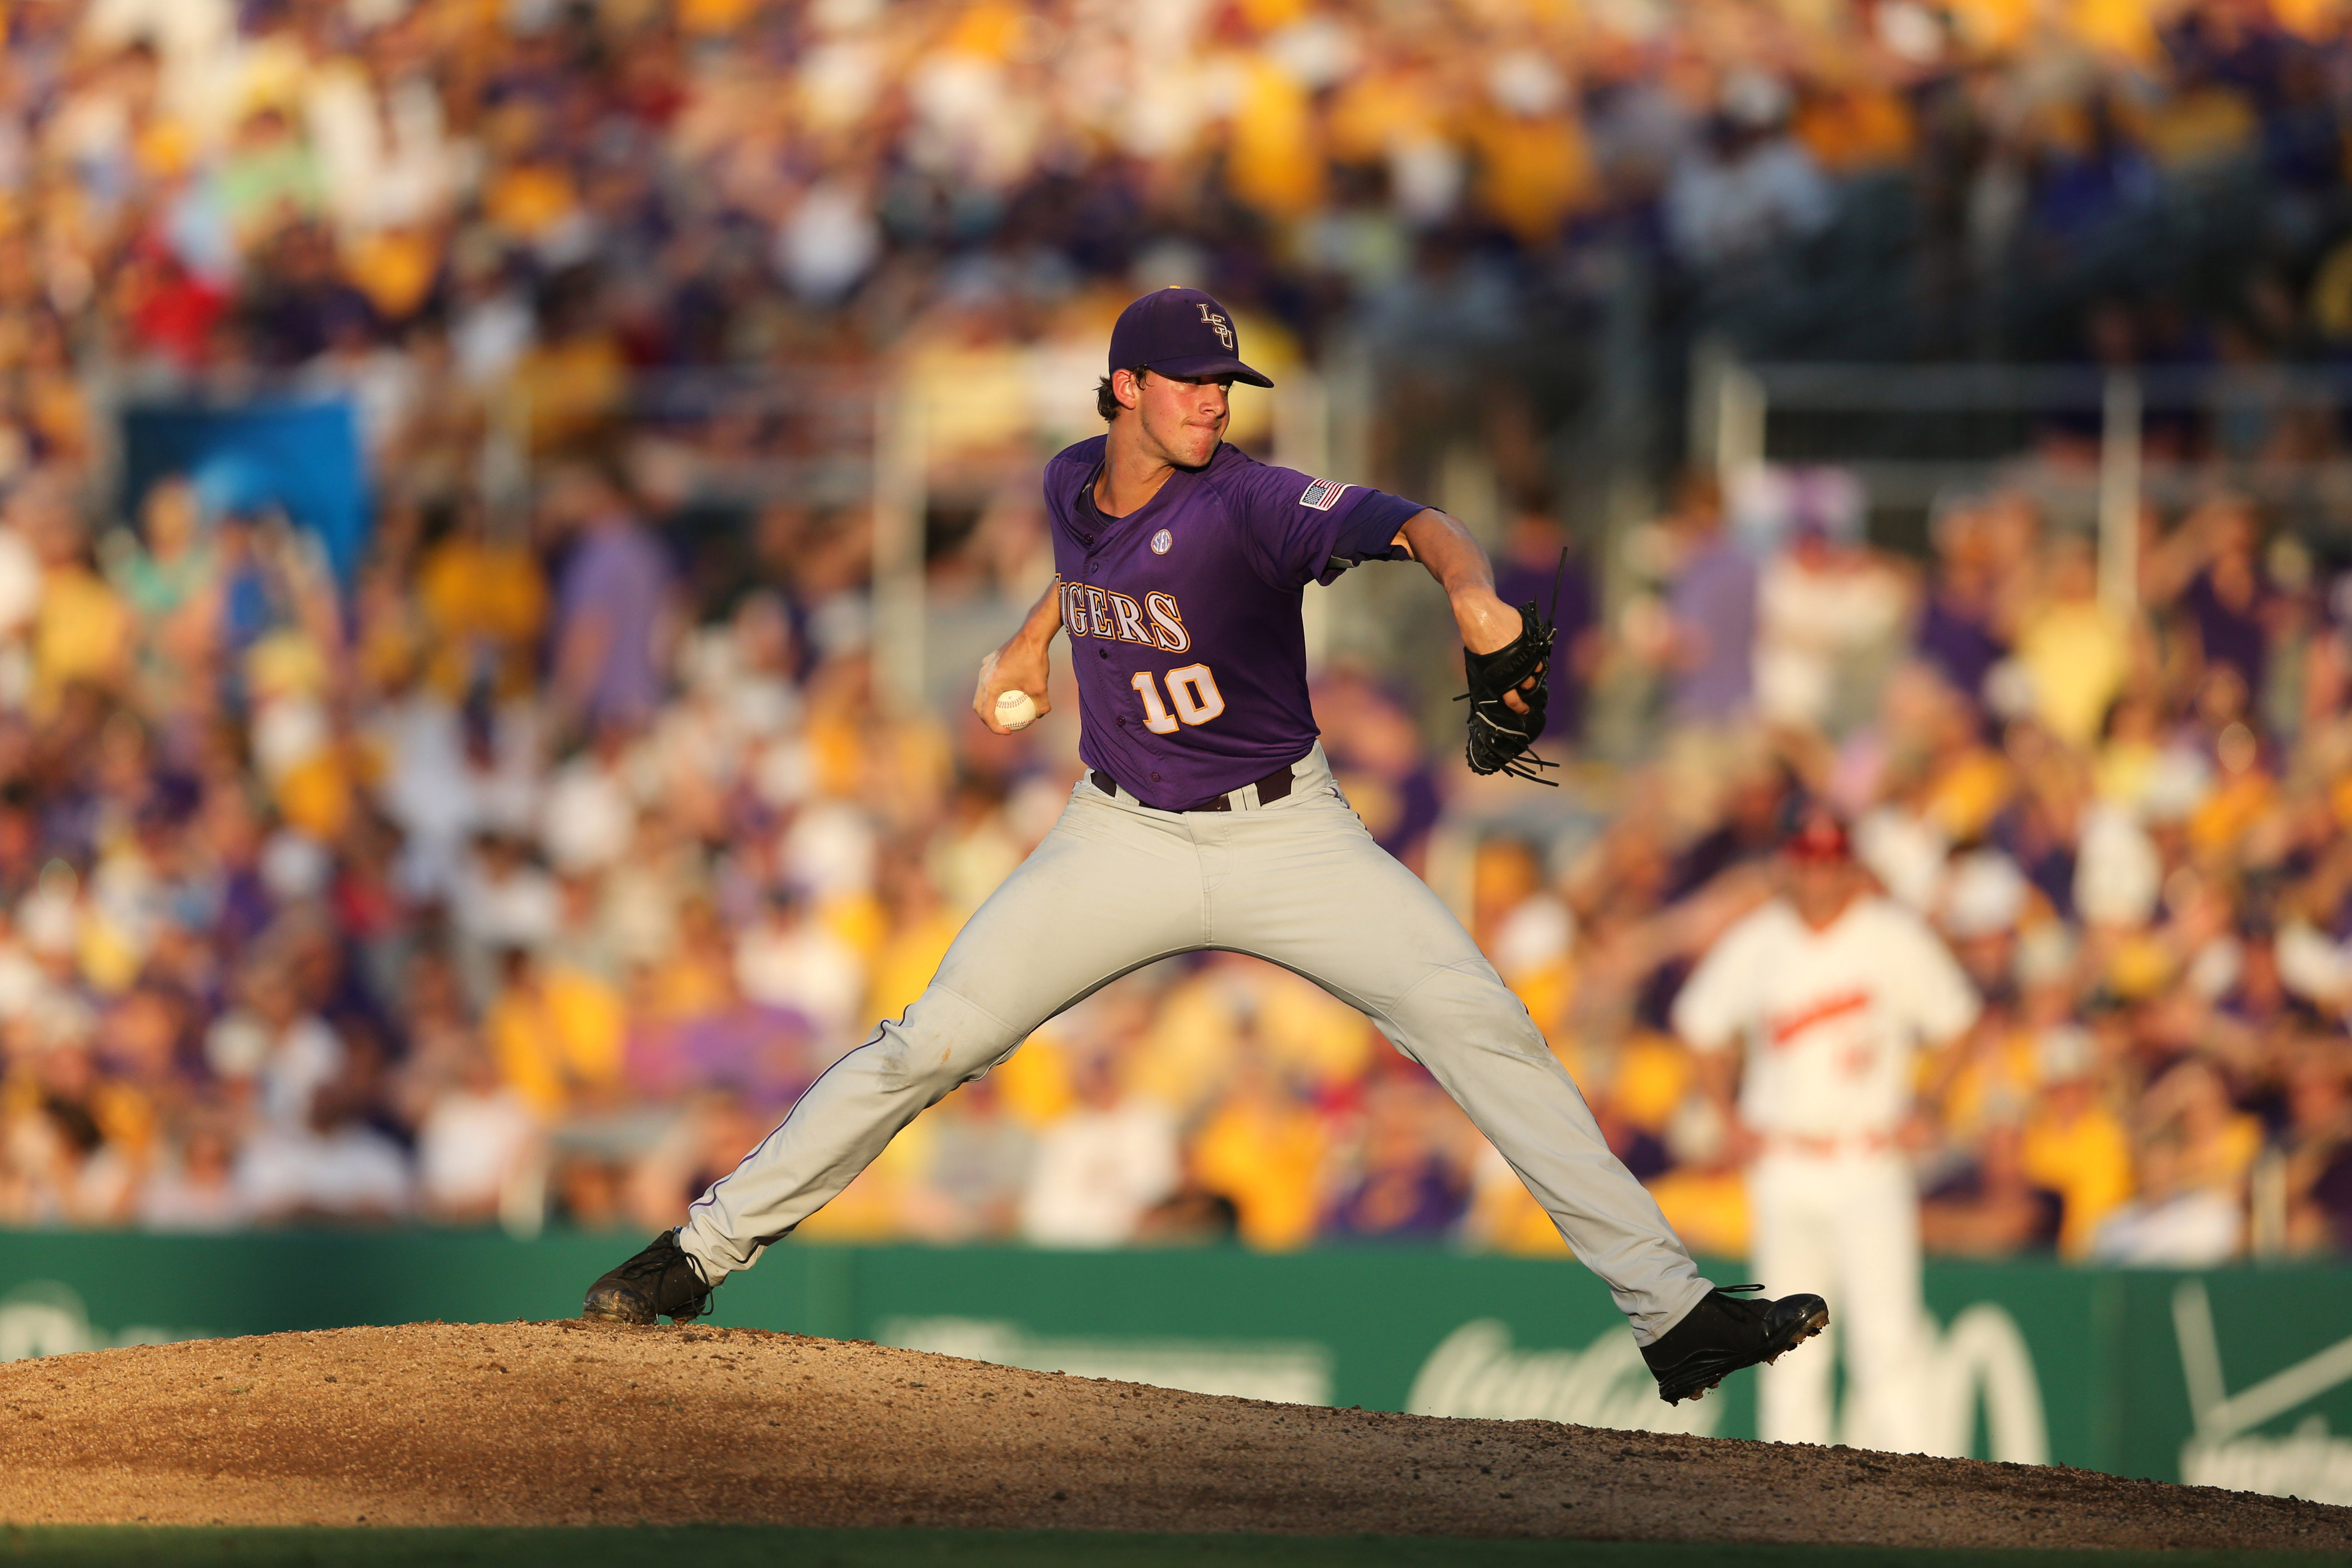 LSU's Aaron Nola is one of the many pitchers to watch in the upcoming amateur draft.